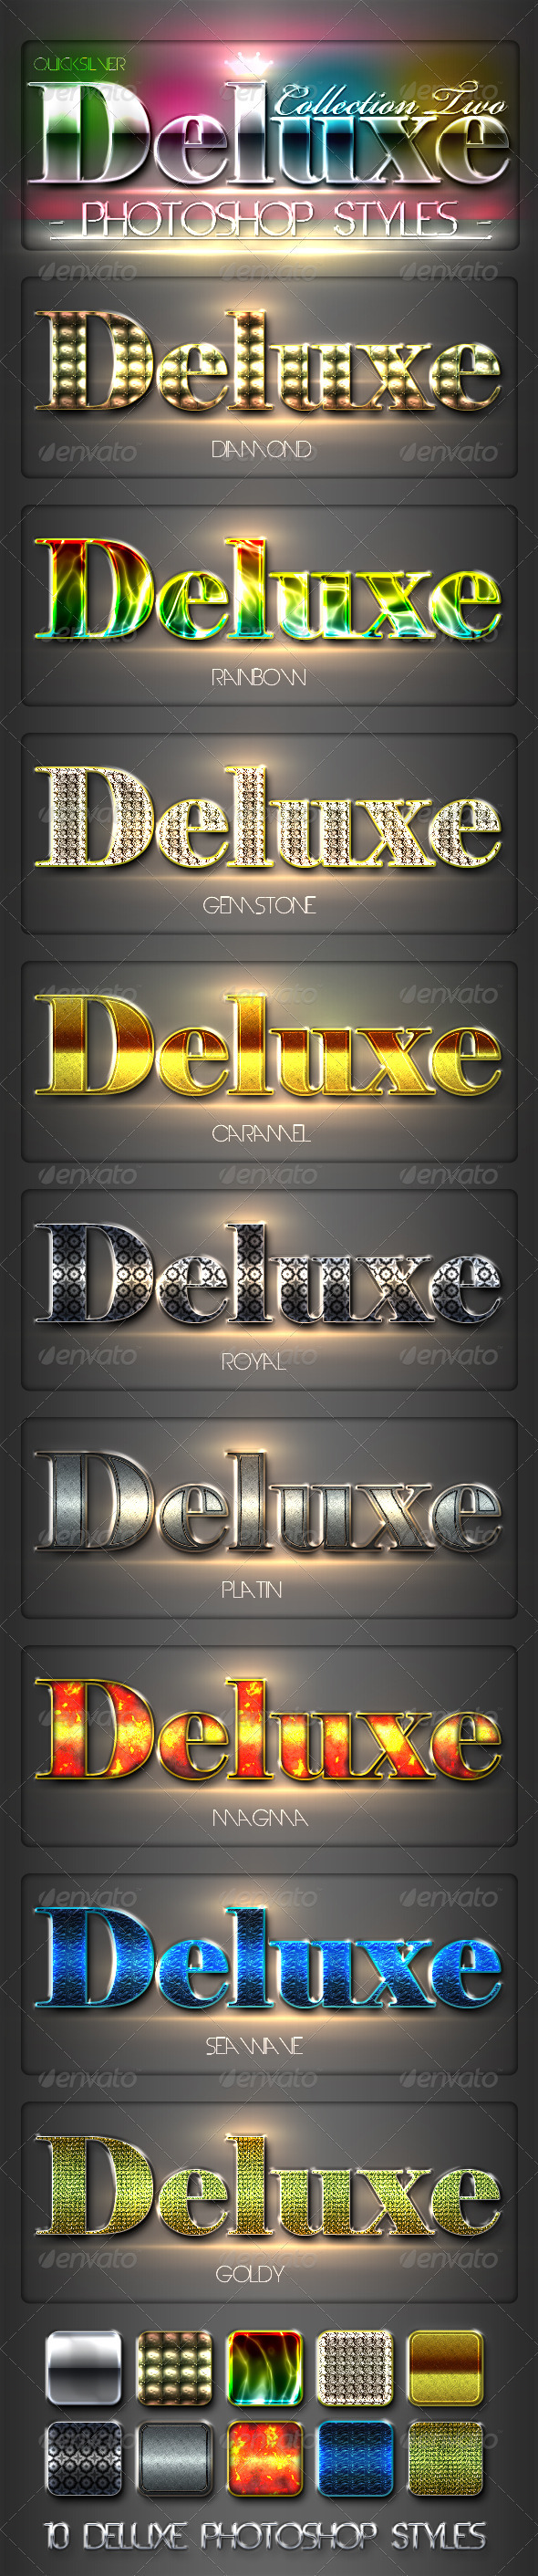 10 DeLuxe Photoshop Layer Styles Collection 2 - Text Effects Styles